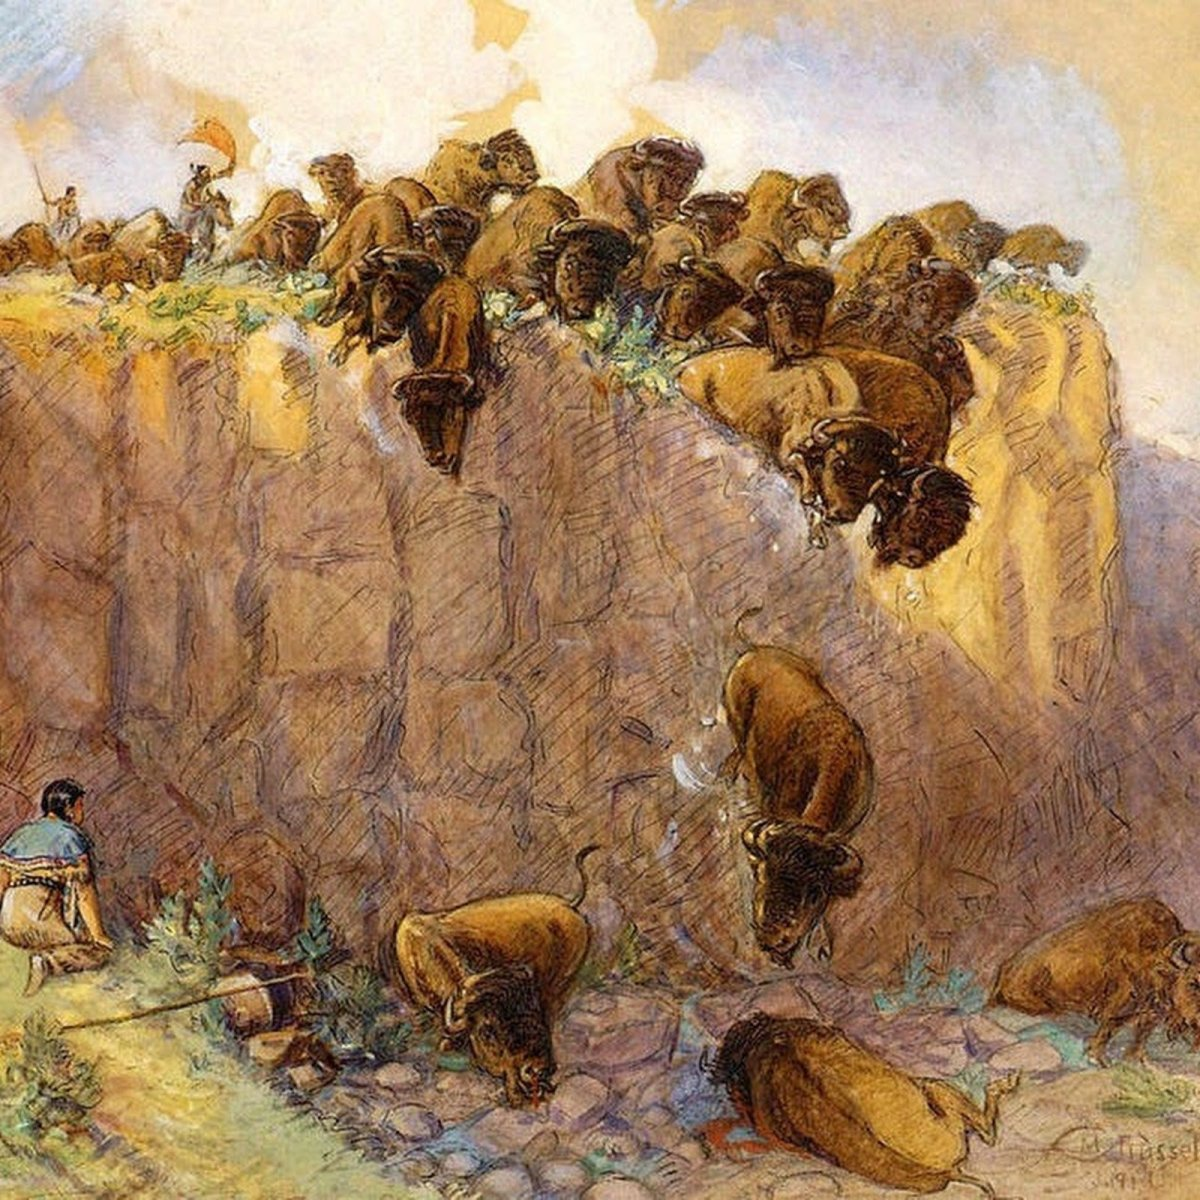 Buffalo Jumps: The Plunge of Death